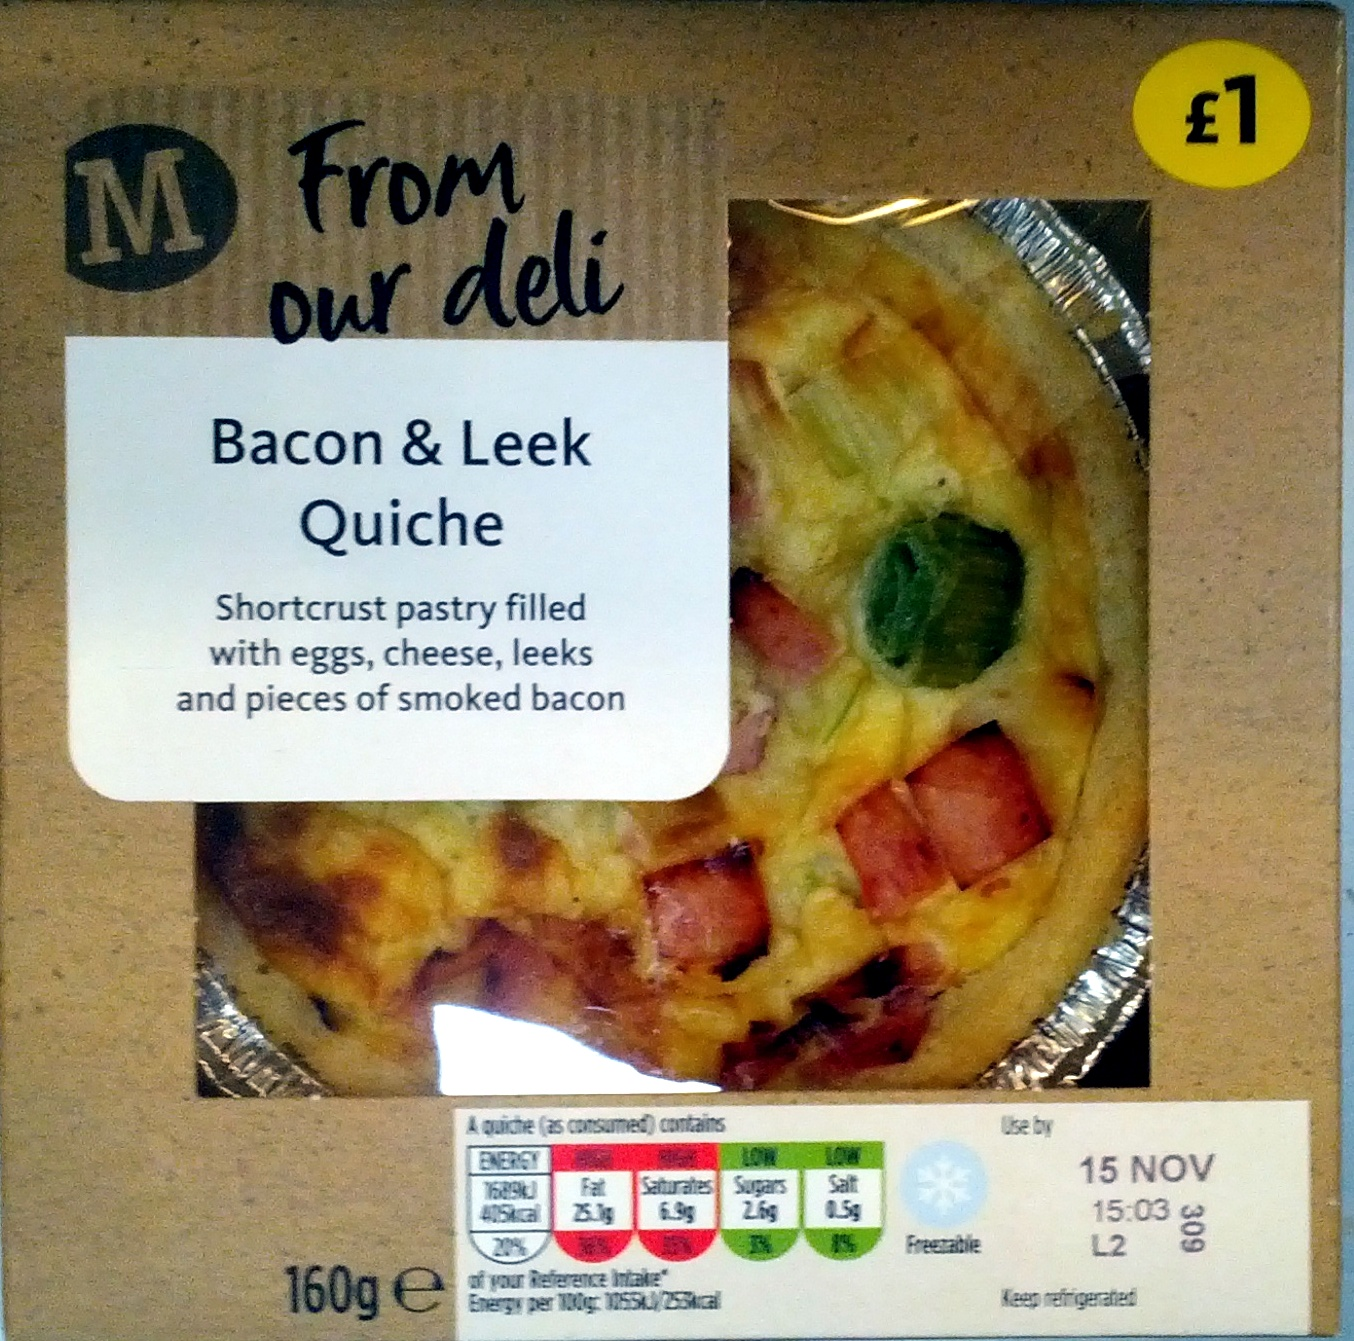 Bacon & Leek Quiche - Morrisons